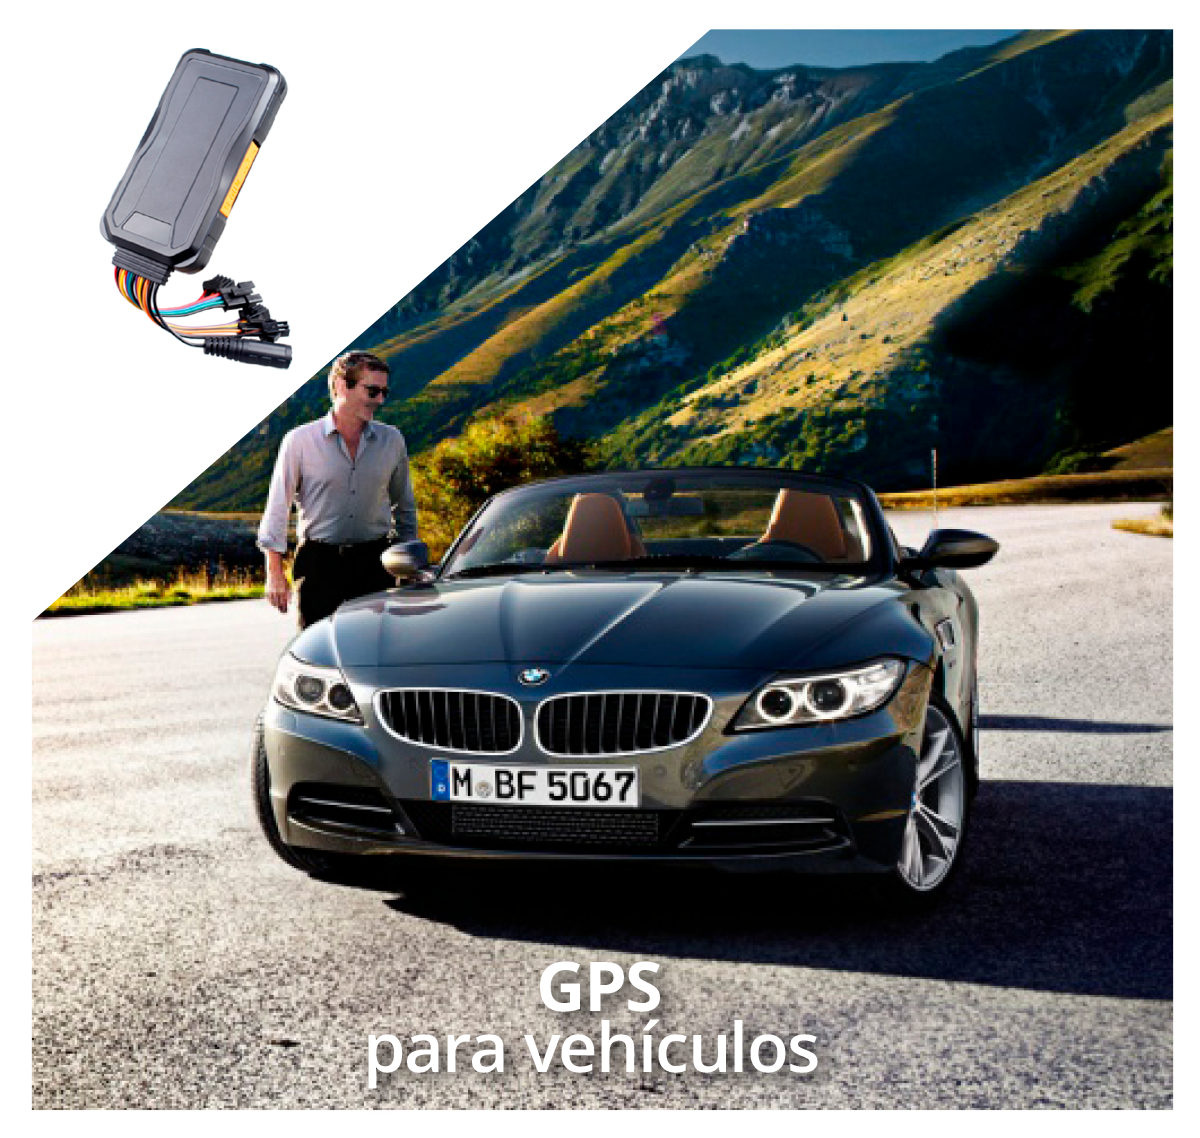 BBOX Security Seguridad guardias virtuales gps - Servicio de Rastreo Satelital y GPS en Guadalajara | BBOX Security